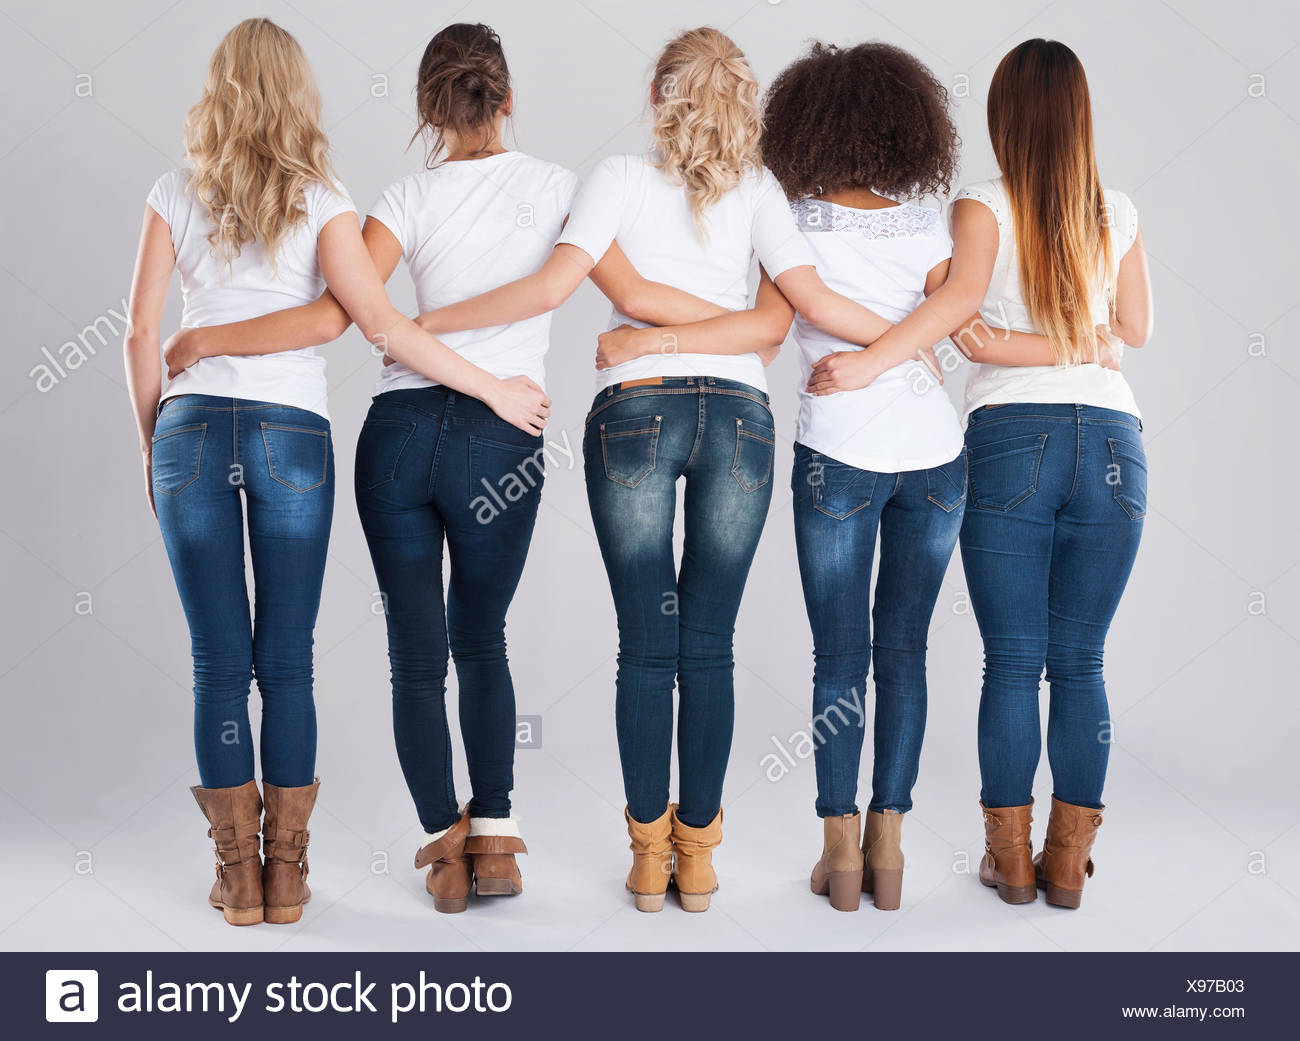 Tight Jeans Immagini & Tight Jeans Fotos Stock Alamy